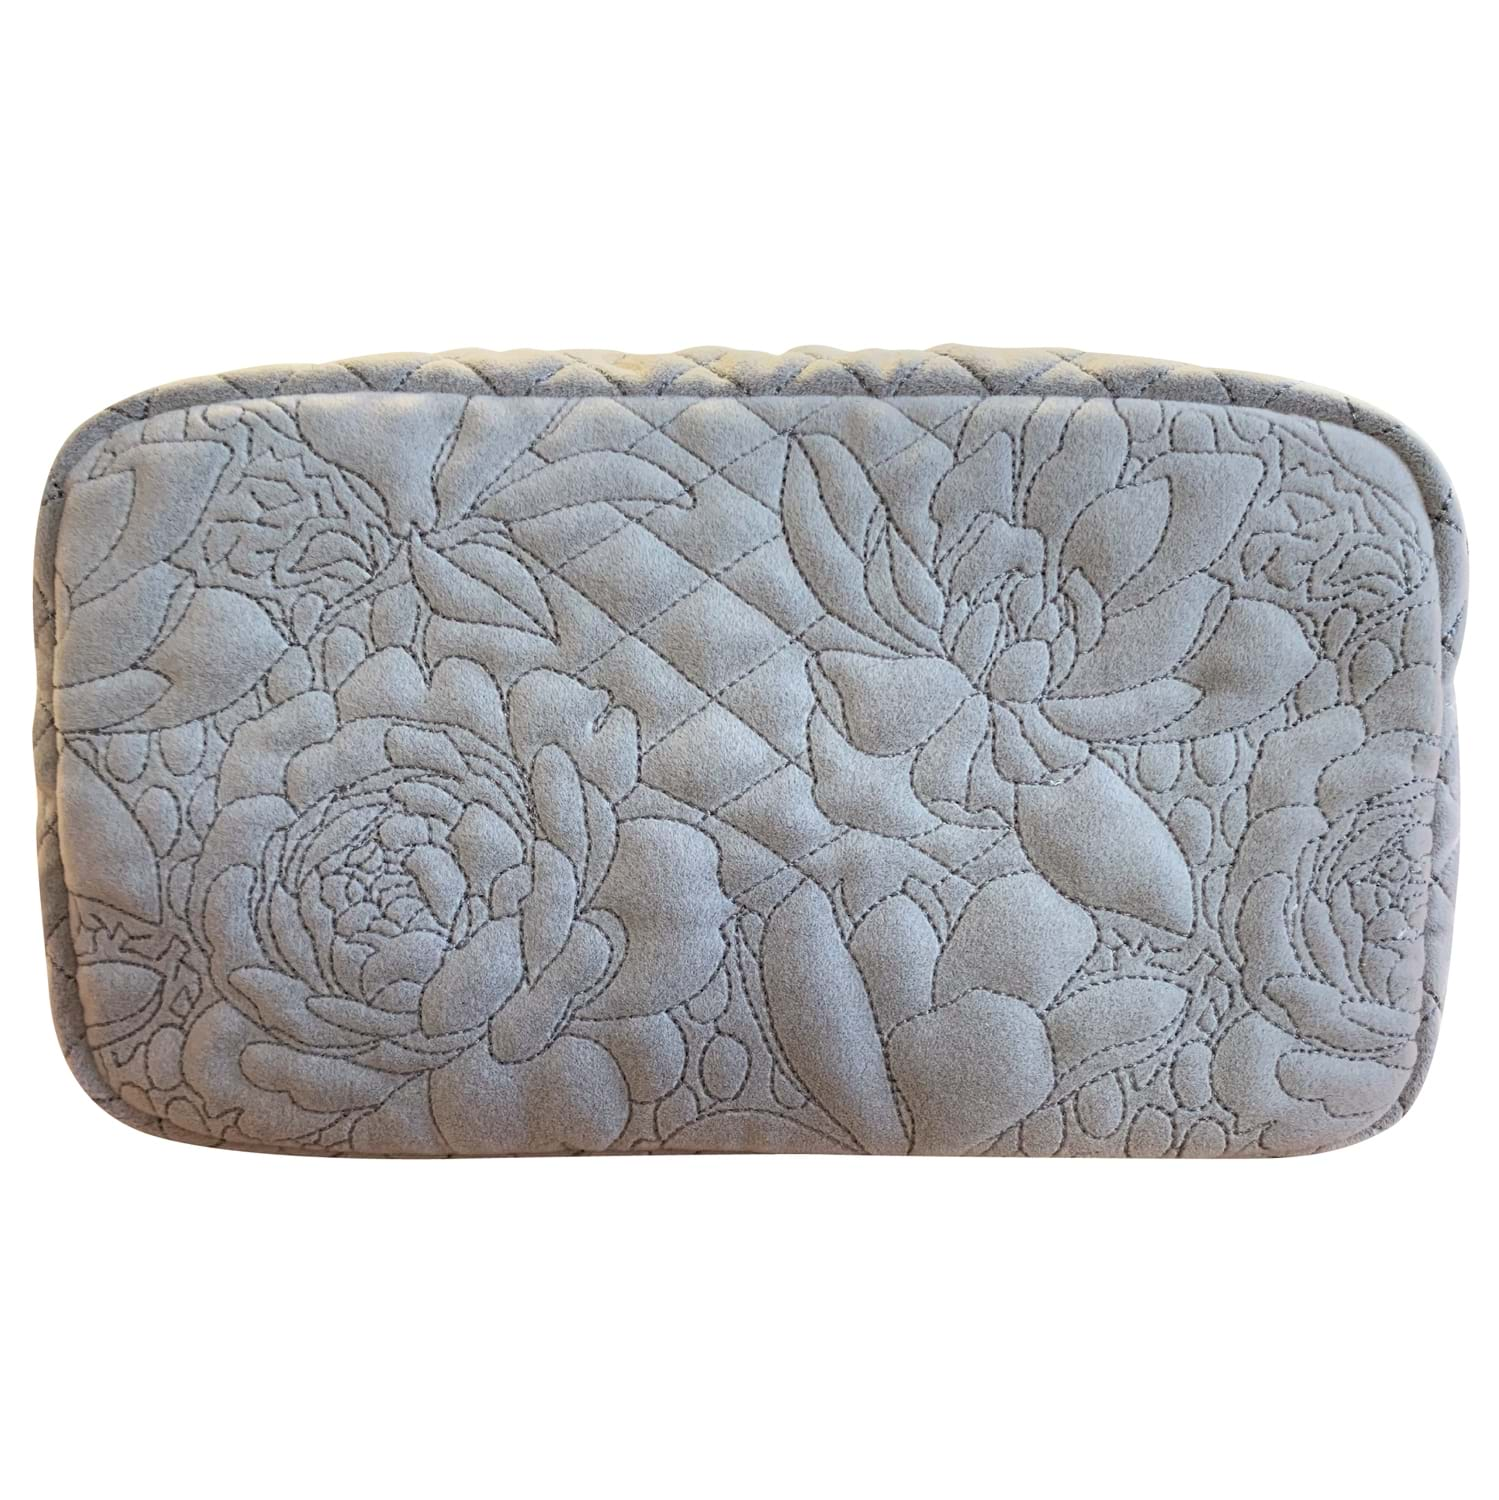 Image of Danielle Exclusive Creations Embroidery Floral Beauty Bag, Dove Grey